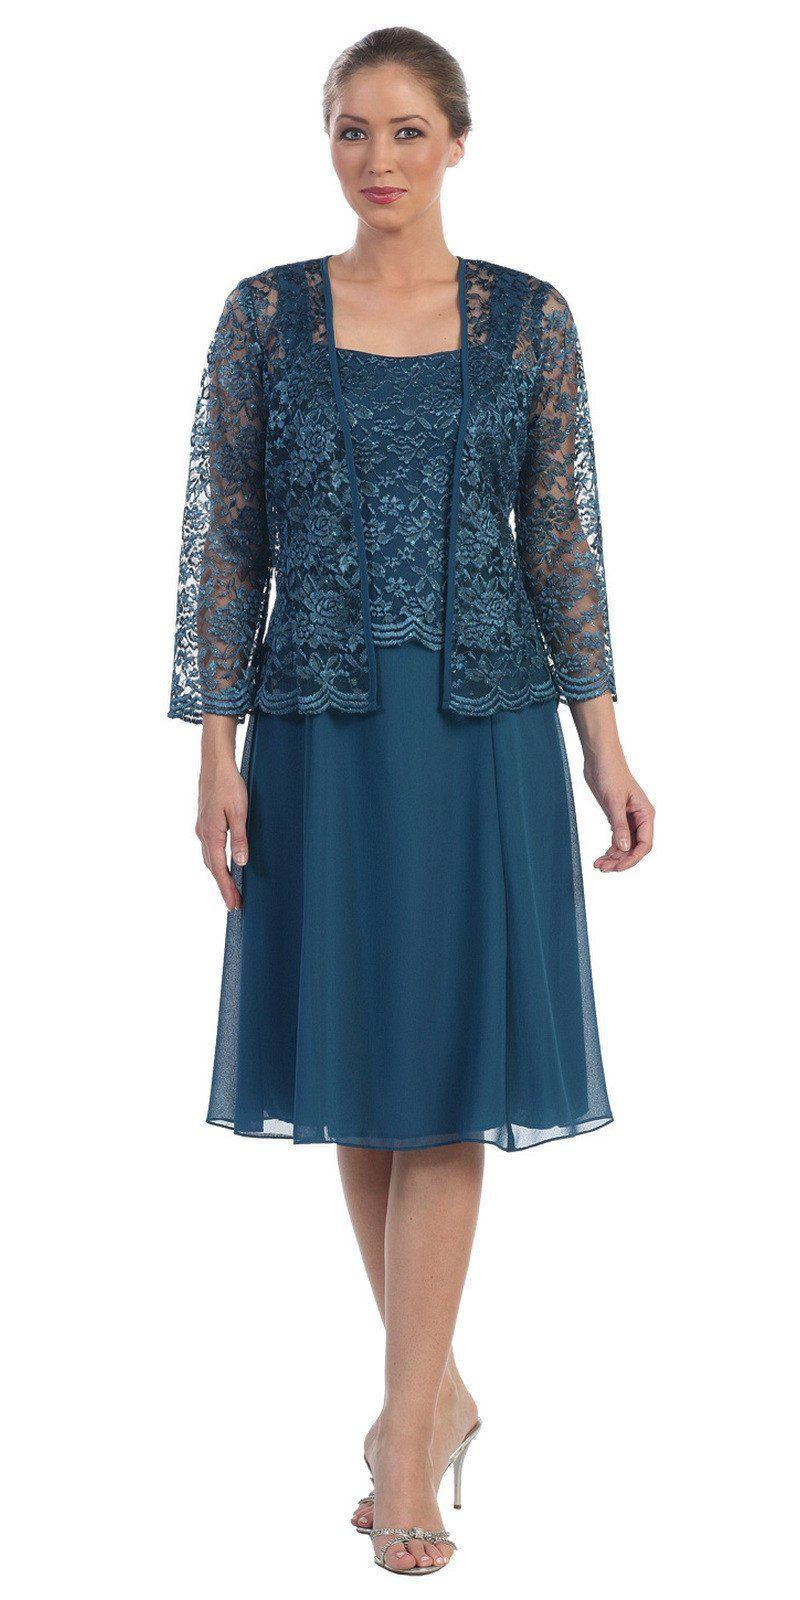 ea35c6973ee This short A line modest knee length teal dress is perfect for mother of  the bride or another formal occasion. This lace with pebble dress has wide  ...